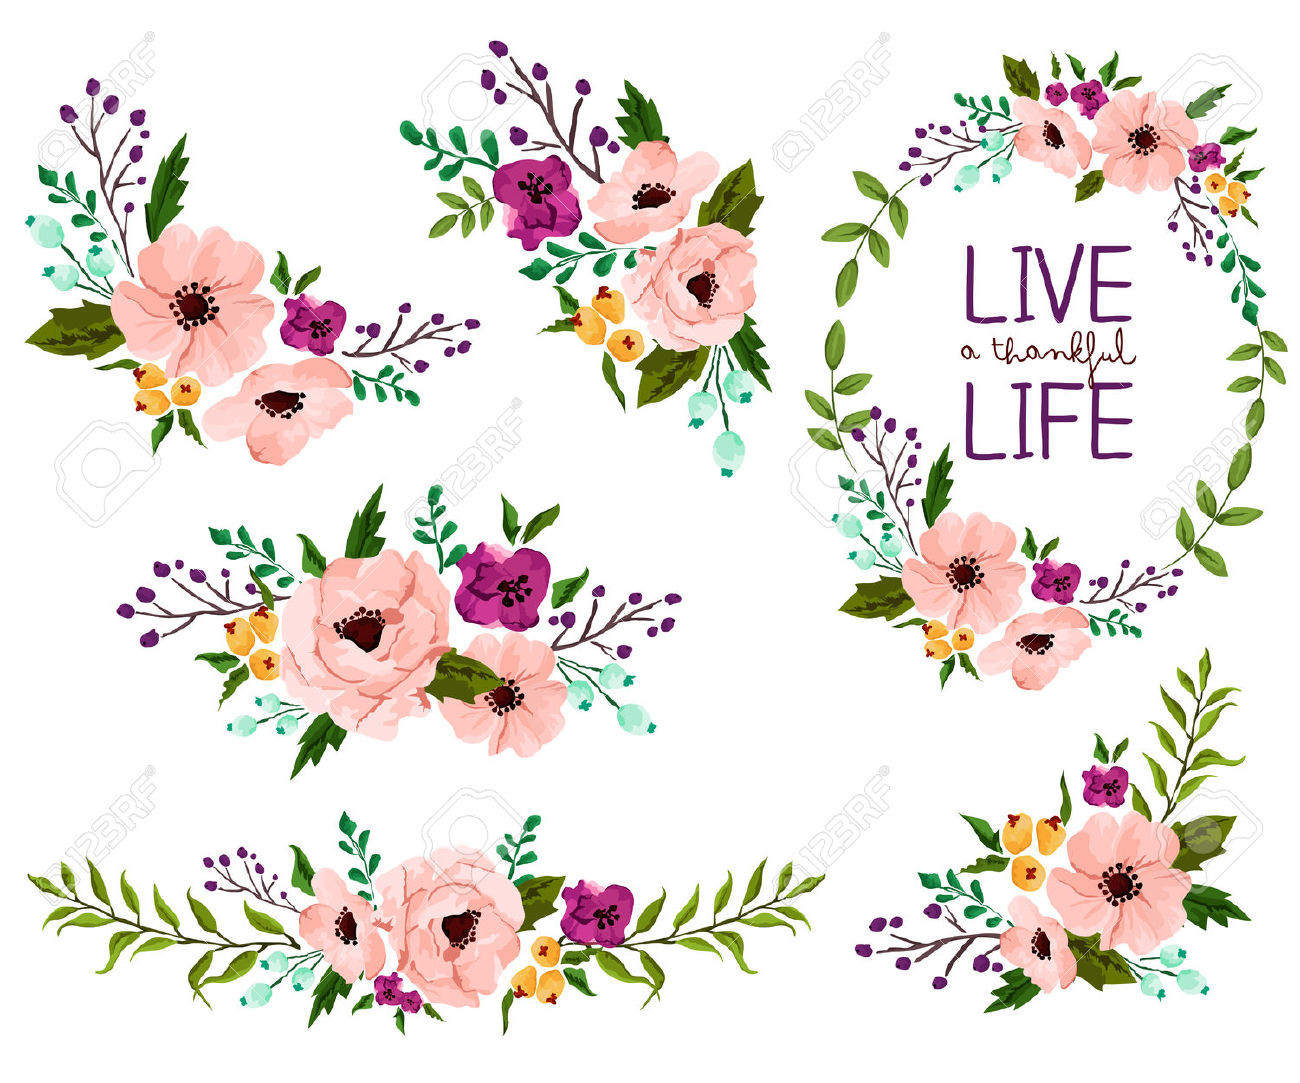 Watercolor flowers vector. Image result for free